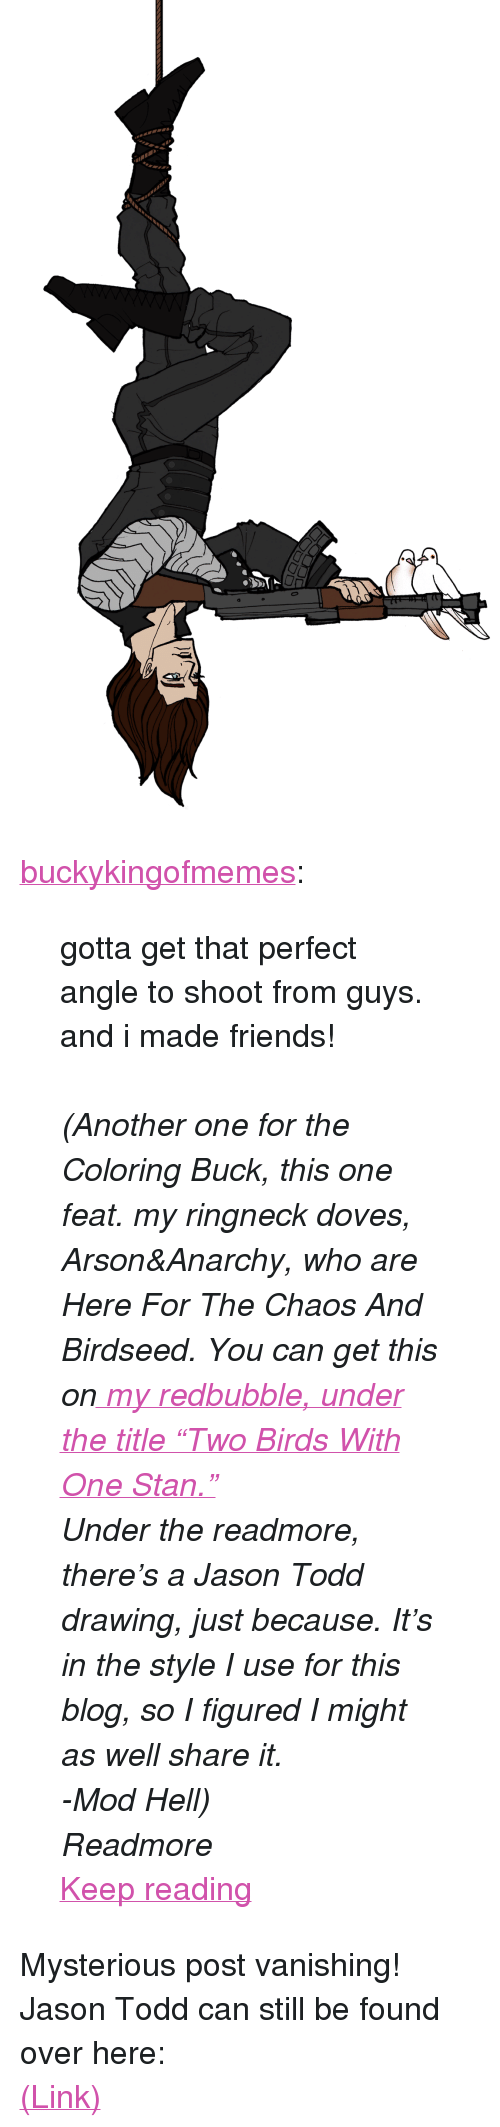 "Another One, Friends, and Stan: <p><a href=""http://buckykingofmemes.tumblr.com/post/164429939636/gotta-get-that-perfect-angle-to-shoot-from-guys"" class=""tumblr_blog"">buckykingofmemes</a>:</p> <blockquote> <p>gotta get that perfect angle to shoot from guys. and i made friends! </p> <p><br/></p> <p><i>(Another one for the Coloring Buck, this one feat. my ringneck doves, Arson&amp;Anarchy, who are Here For The Chaos And Birdseed. You can get this on<a href=""https://www.redbubble.com/people/buckykingofmeme?asc=u""> my redbubble, under the title ""Two Birds With One Stan.""</a></i></p> <p><i>Under the readmore, there's a Jason Todd drawing, just because. It's in the style I use for this blog, so I figured I might as well share it.</i></p> <p><i>-Mod Hell)</i></p> <p><i>Readmore</i></p> <p><a href=""http://buckykingofmemes.tumblr.com/post/164429939636/gotta-get-that-perfect-angle-to-shoot-from-guys"" class=""tmblr-truncated-link read_more"">Keep reading</a></p> </blockquote> <p>Mysterious post vanishing! Jason Todd can still be found over here: </p><p><a href=""http://hellenhighwater.tumblr.com/post/164429454415/jason-todd-i-recently-ish-followed"">(Link)</a></p>"